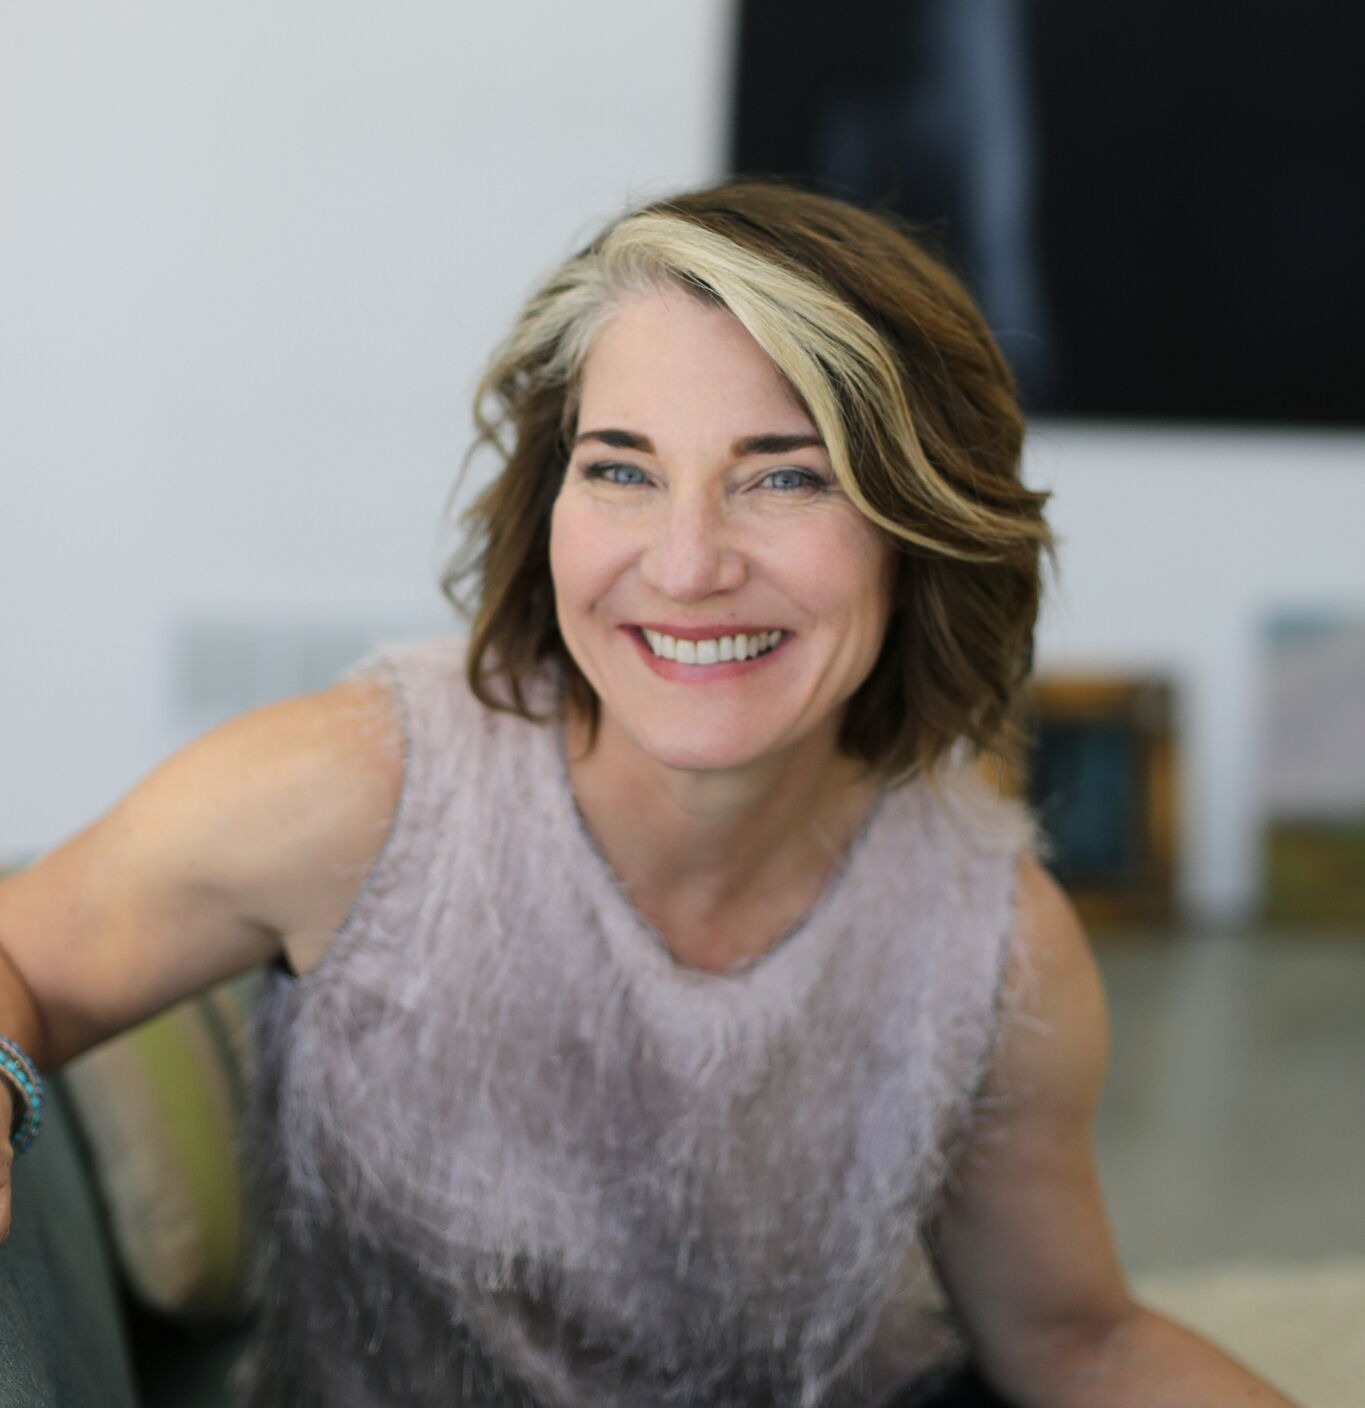 """""""Jennie Nash is the Super Woman of book coaches. She is bringing dignity and skills to this wild west profession and this book is one of her many stellar contributions. Set up your business with your eyes wide open and all the info and skills you need. As generous and smart as Jennie herself."""" - Jennifer Louden, best-selling author and teacher"""